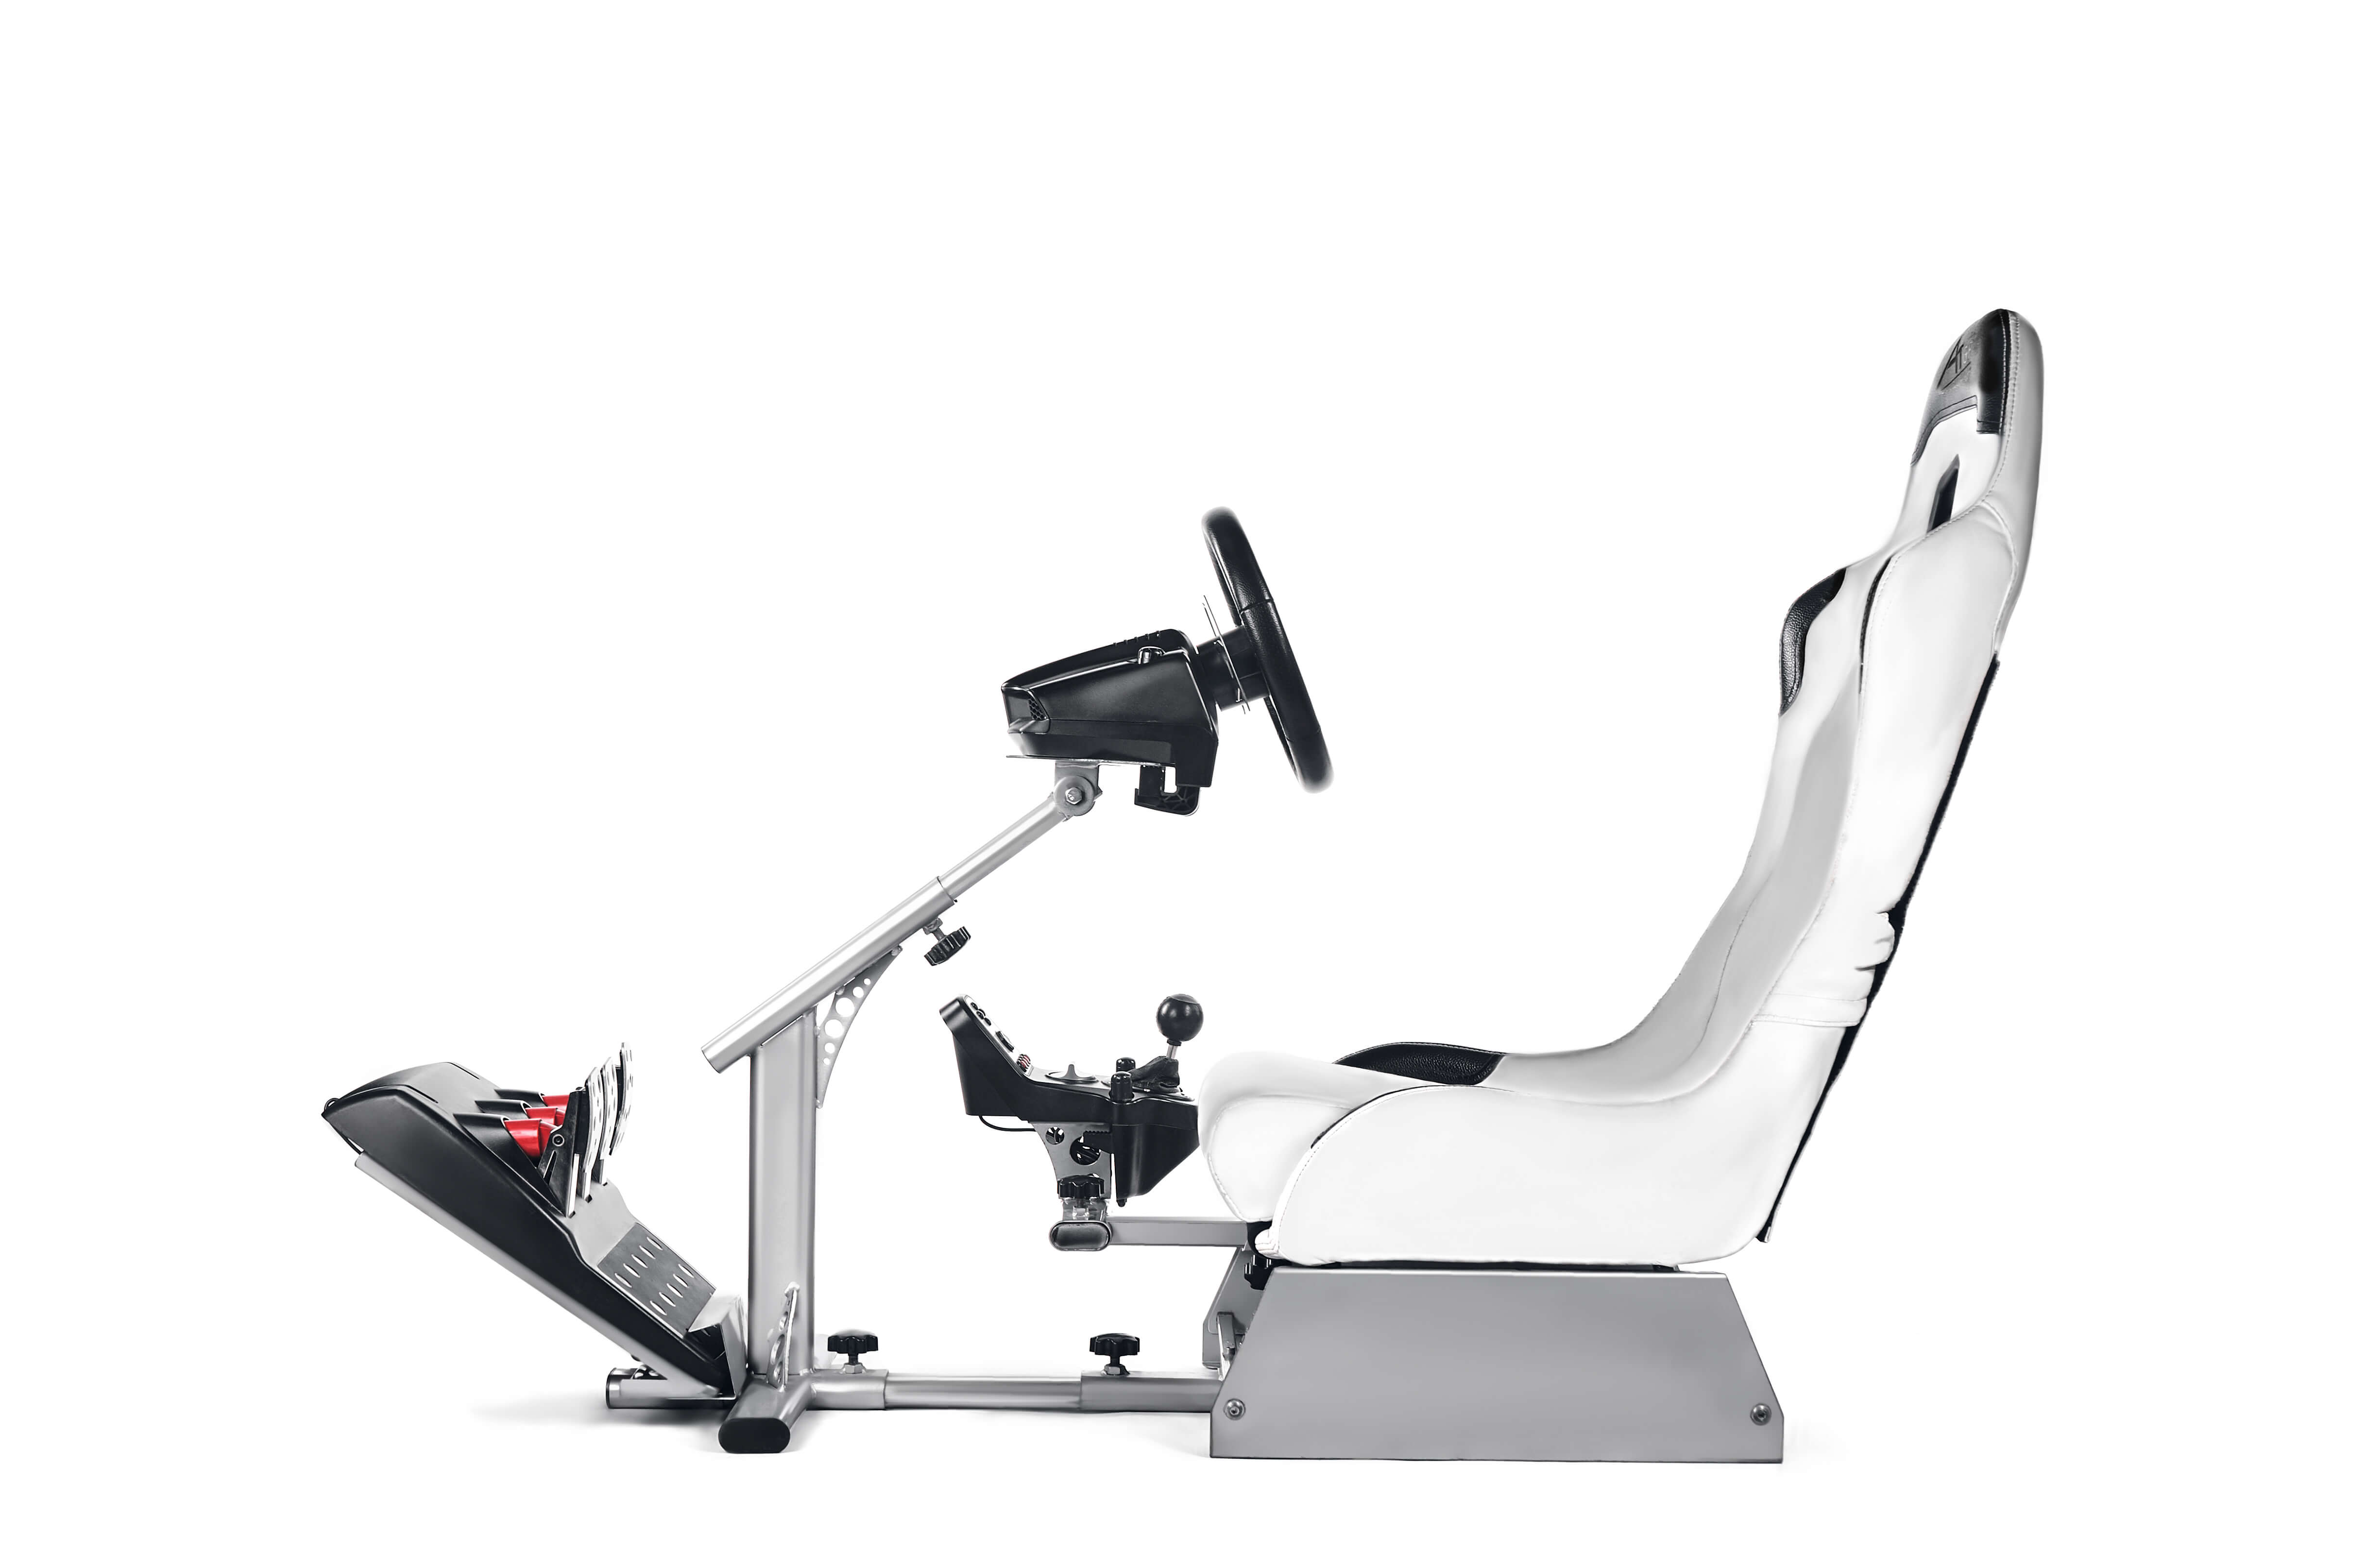 Full Motion Simulator 2,3,6 Axis Platforms for PC home Flight and